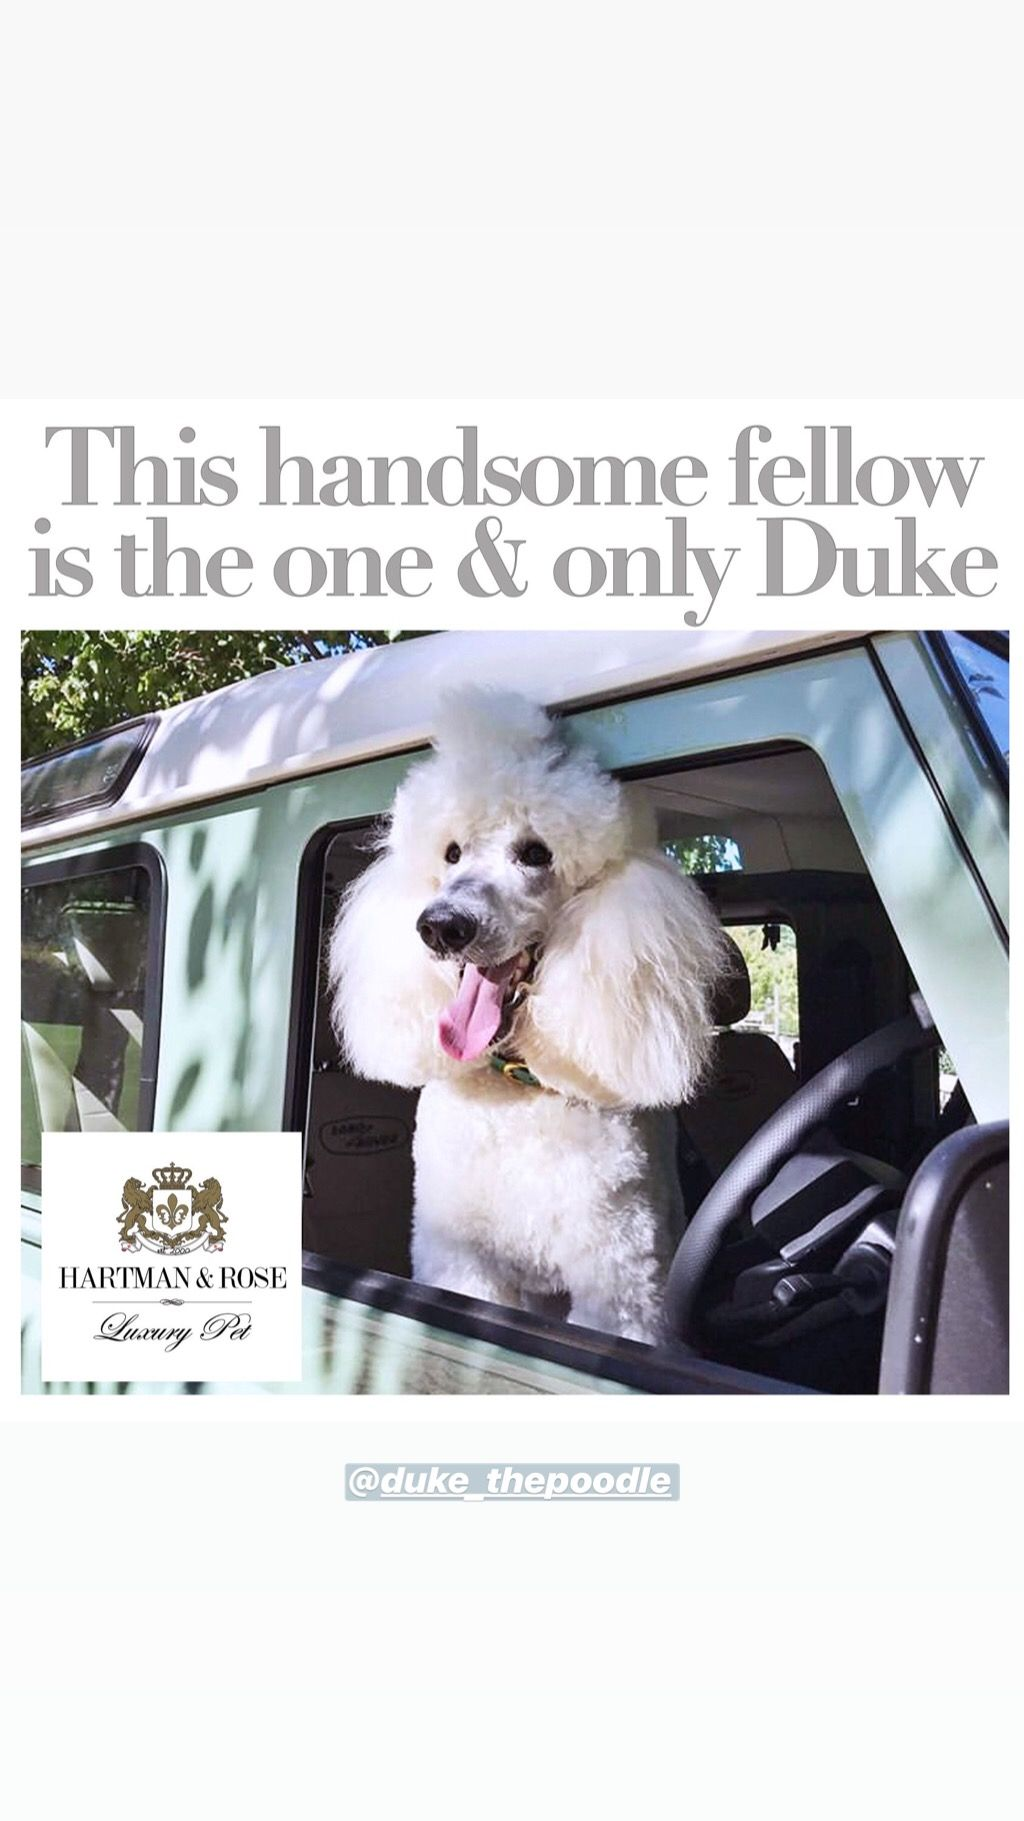 Save 40% use code: Parkavenue Hartman & Rose Luxury Pet Products www.hartmanandrose.com @hartmanandrose #hartmanandrose  This is Duke the majestic Standard Poodle looking super cool in this vintage Land Rover Defender. Wearing his H&R collar in kelly green ready for a big adventure. @duke_thepoodle Take the Lead & Walk in Style ❤️